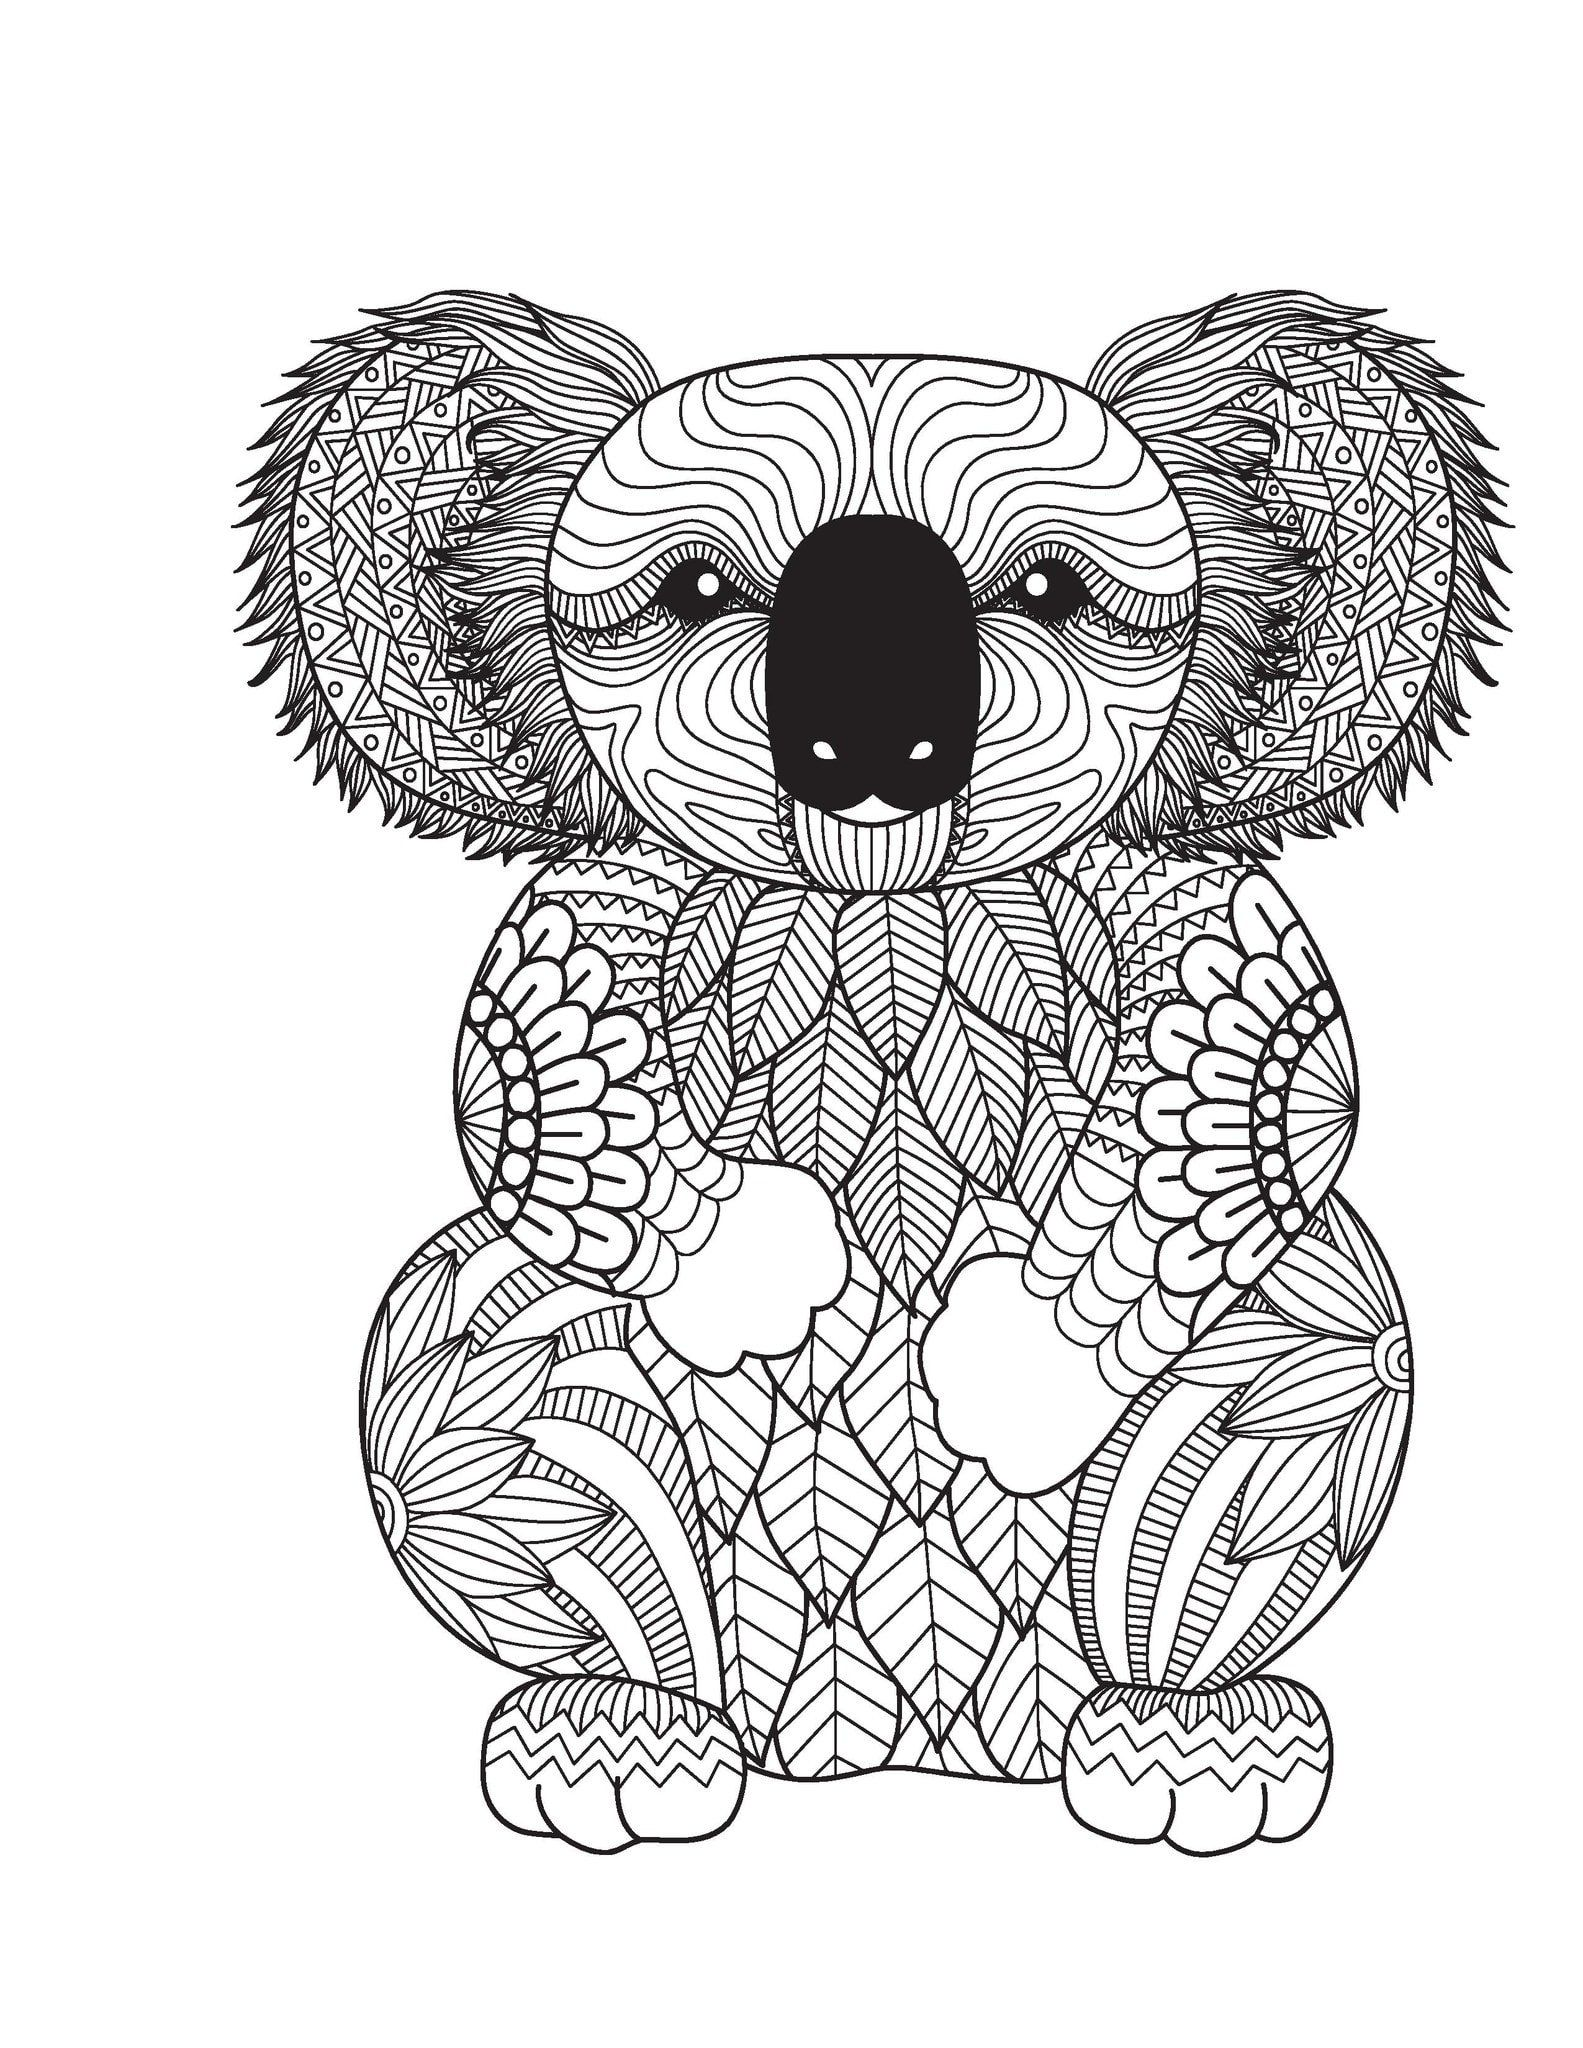 Free Printable Koala Coloring Pages For Kids Bear Coloring Pages Zoo Animal Coloring Pages Animal Coloring Pages